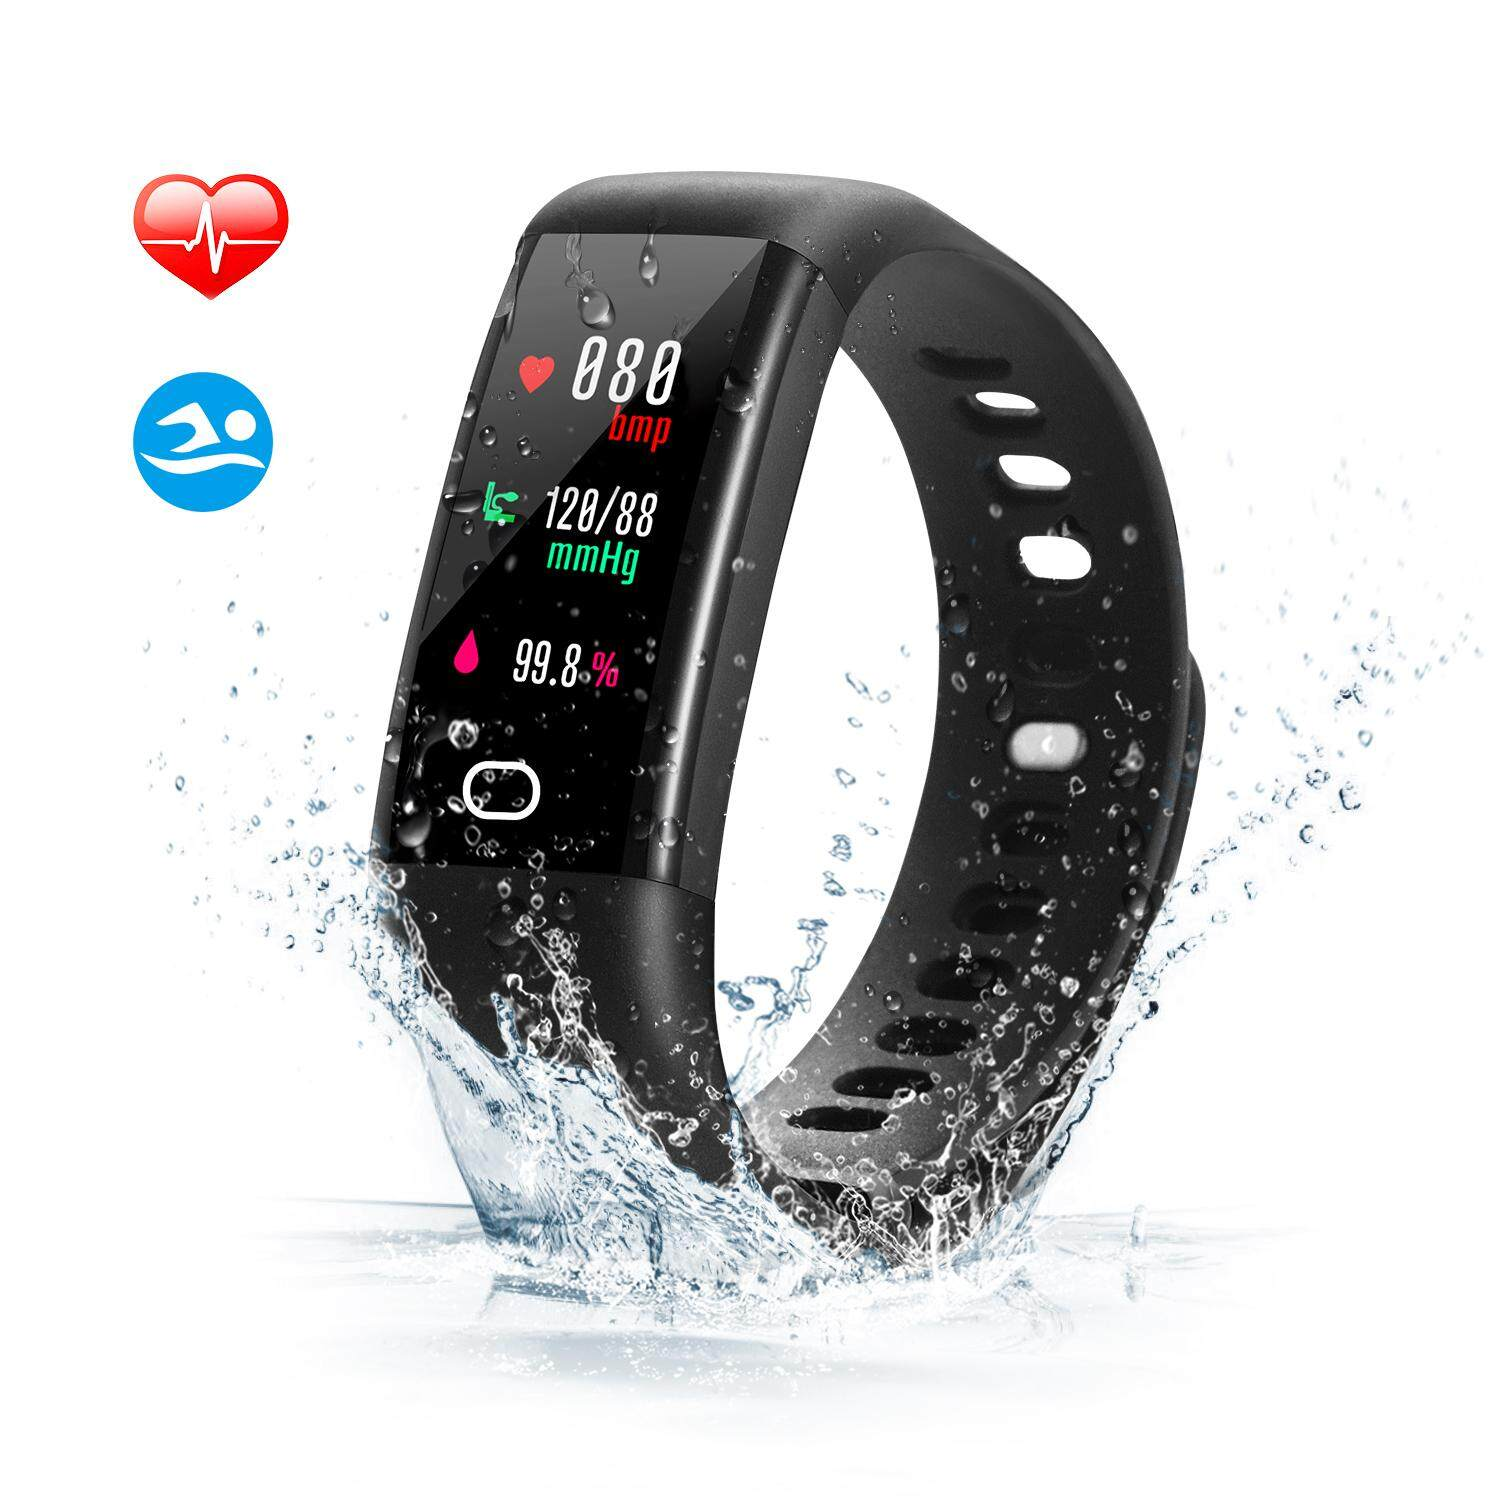 Fitness Tracker, Savfy Color Screen Display Waterproof Sports Smart Watch Wristband With Heart Rate Monitor, Activity Tracker Pedometer For Ios & Android.